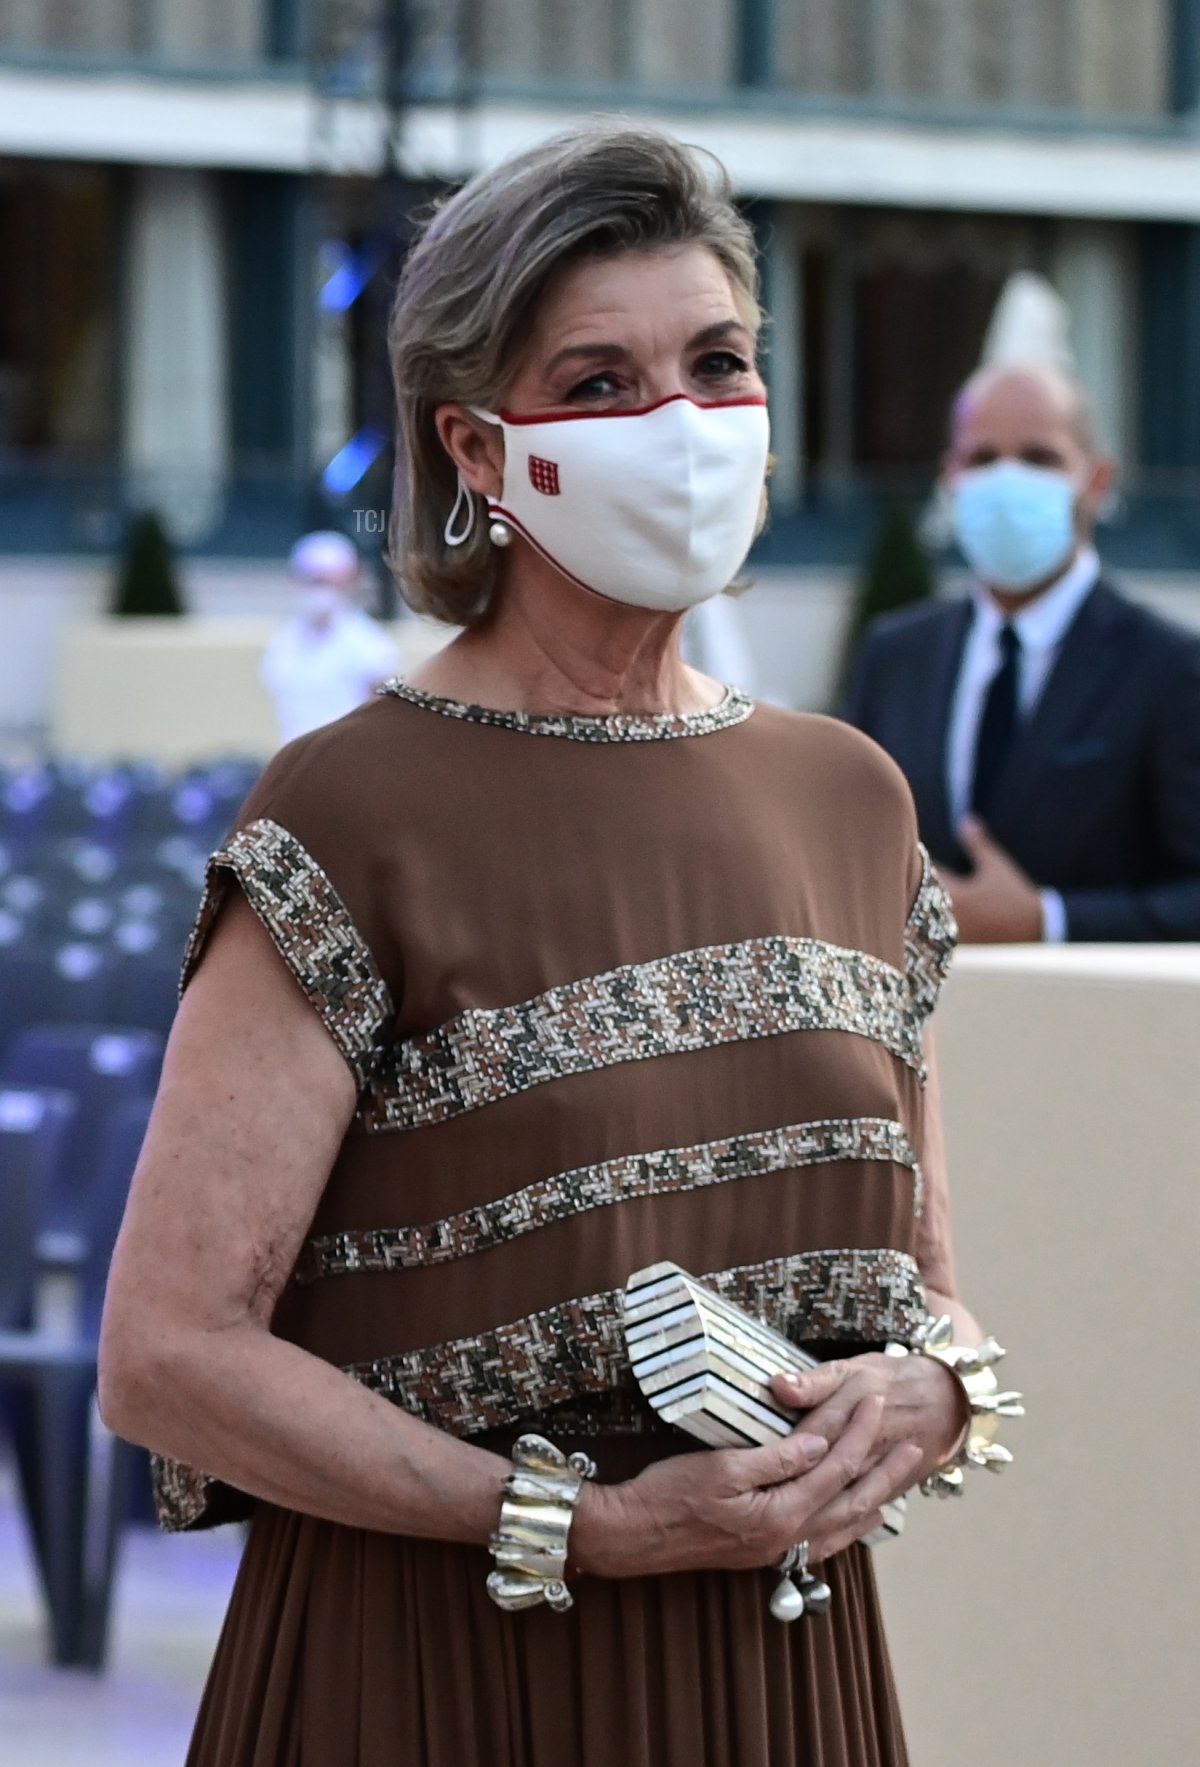 Prince Albert II of Monaco and Princess Caroline of Hanover arrive to attend the Red Cross Summer Concert on July 16, 2021 in Monte-Carlo, Monaco